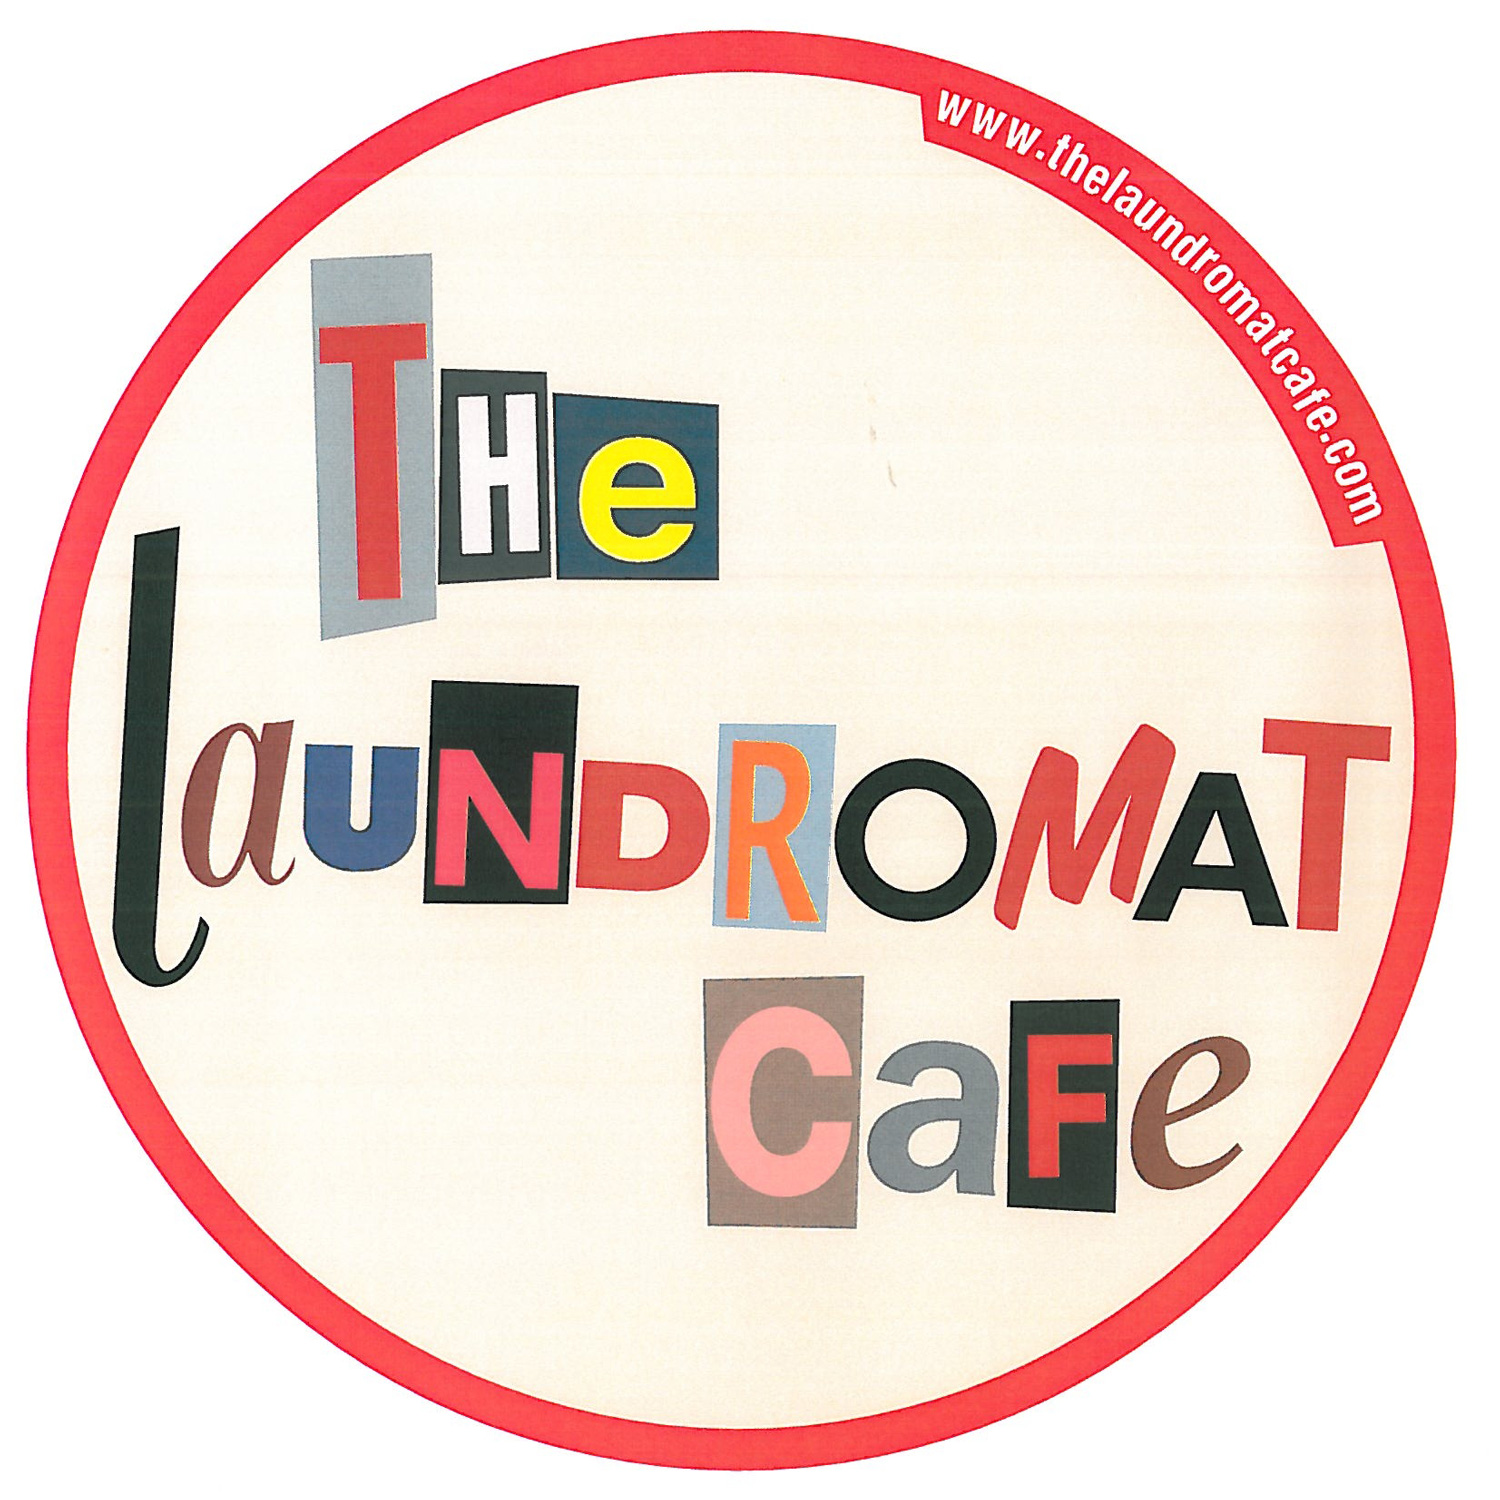 the_laundromat_cafe_logo.jpg